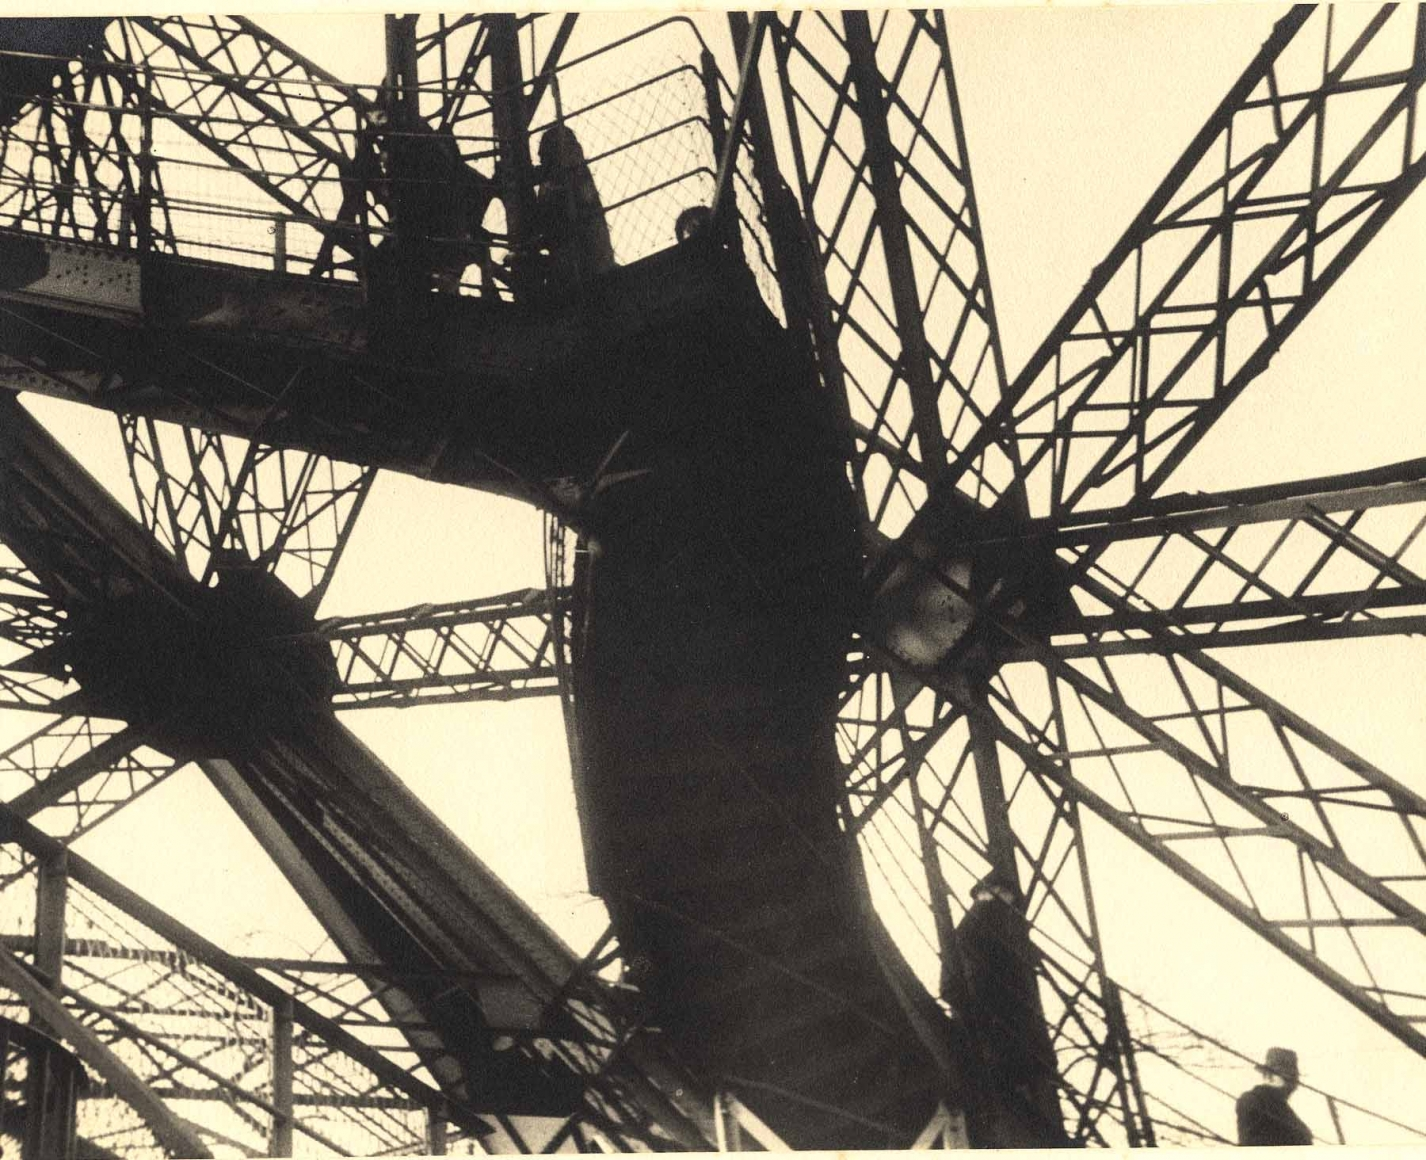 Ilse Bing, Eiffel Tower, Paris, 1932